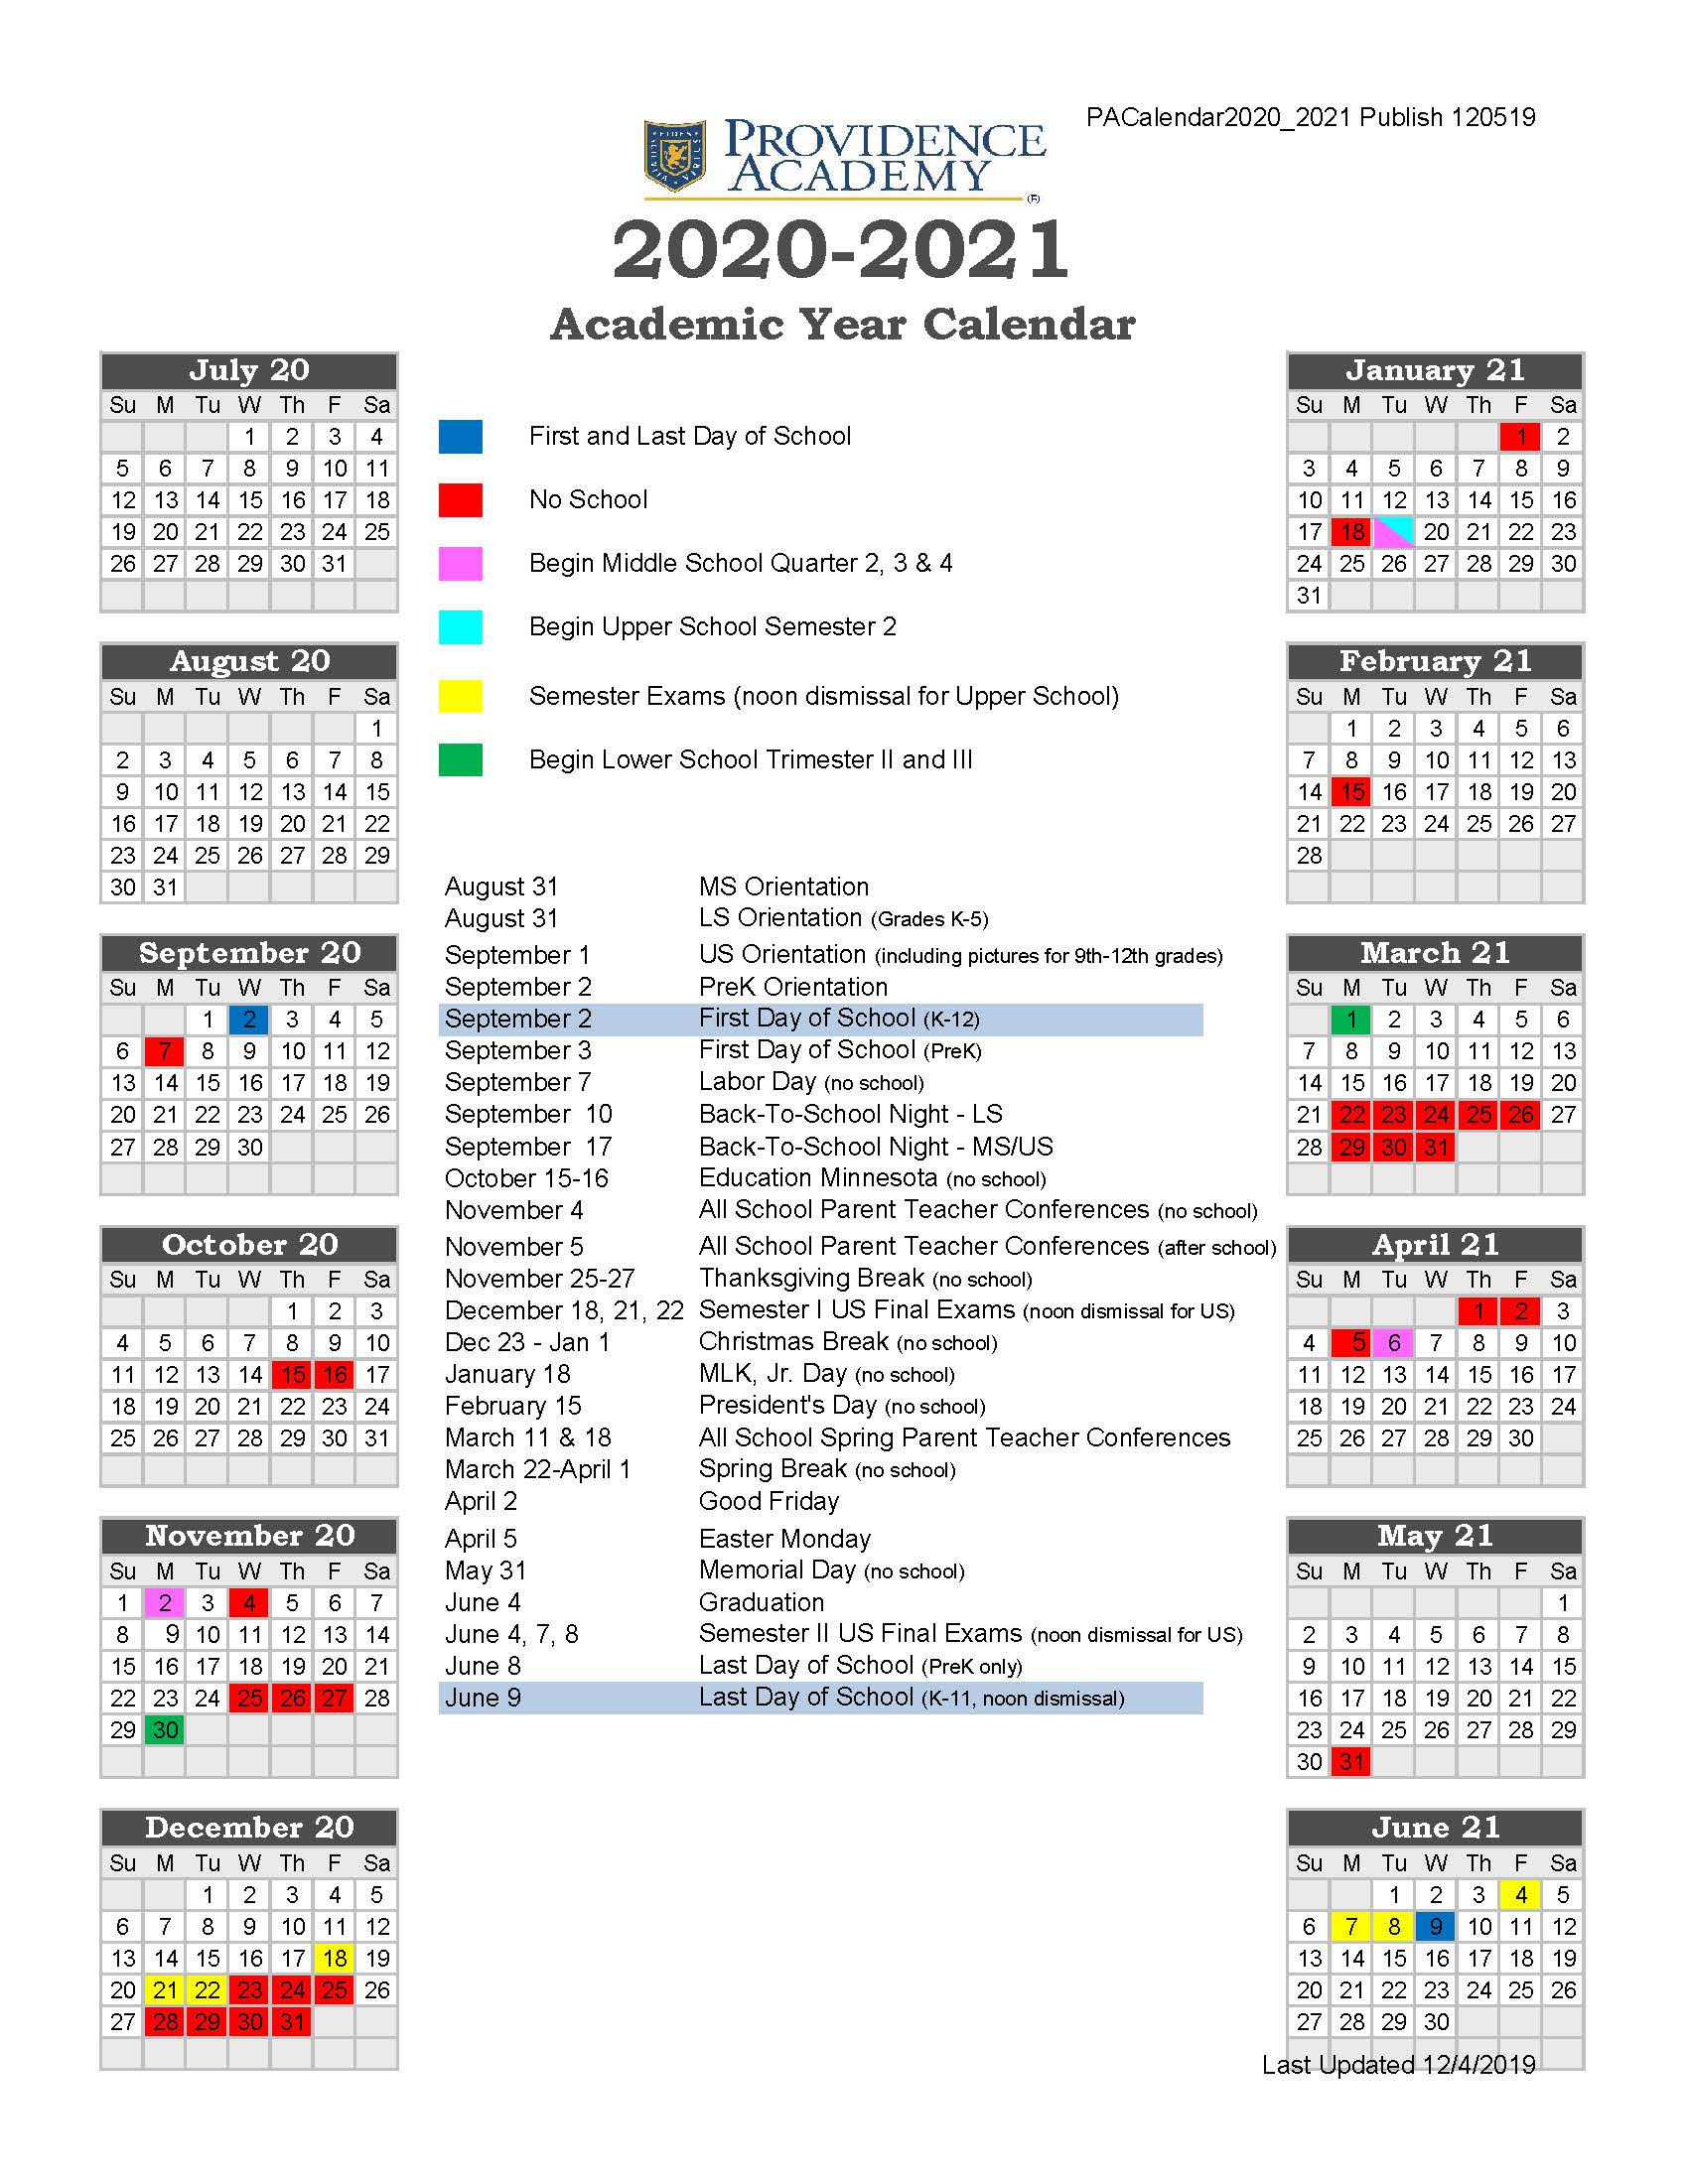 19-20_Providence-Academy-Academic-Calendar-2020-2021 for White Bear Lake Calendar Handbook 2021 2021